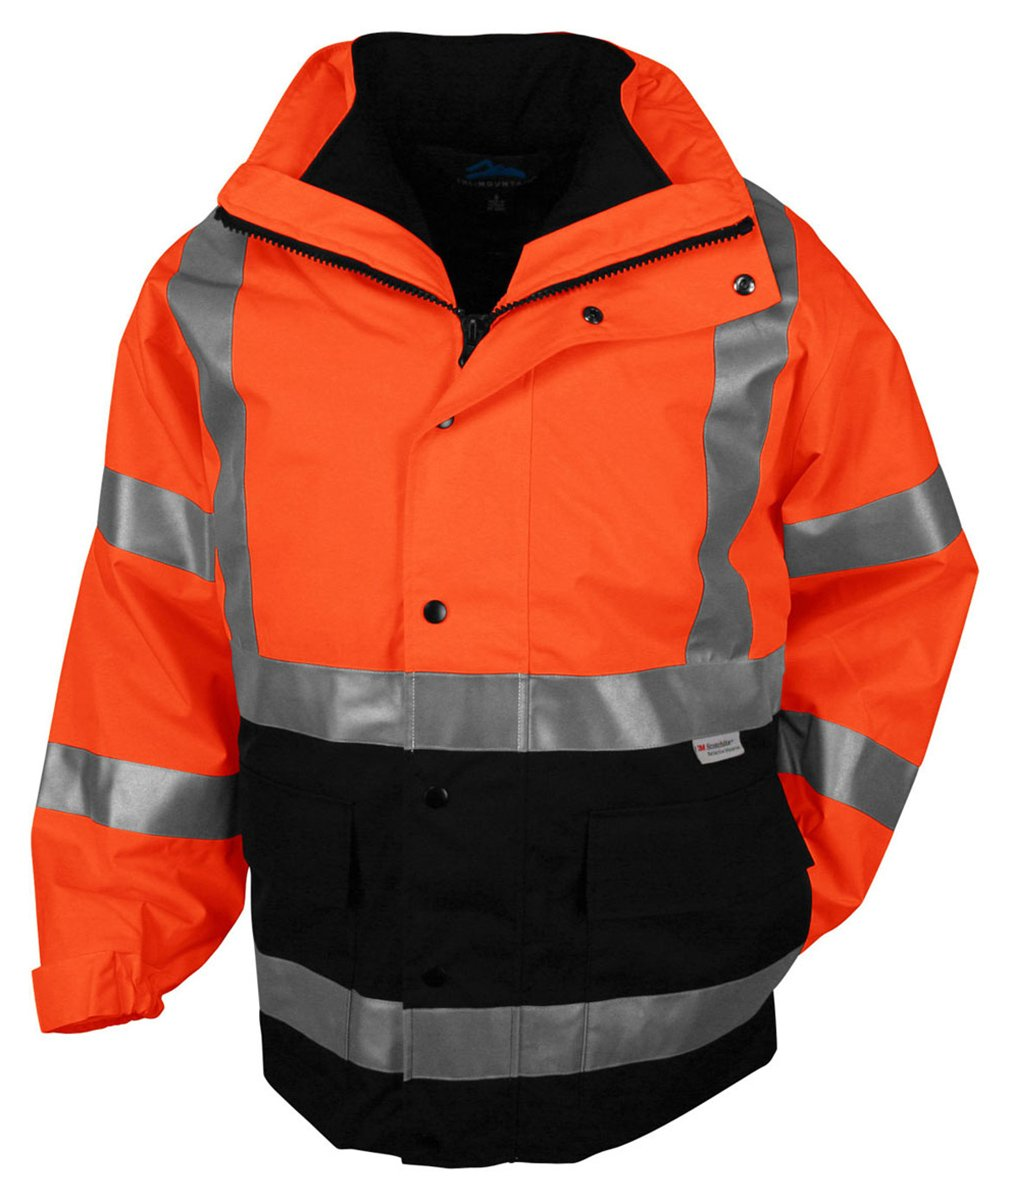 Tri-mountain 3-in-1 system waterproof safety parka. ANSI Class 3. - OSHA ORANGE/BLACK - XXXX-Large